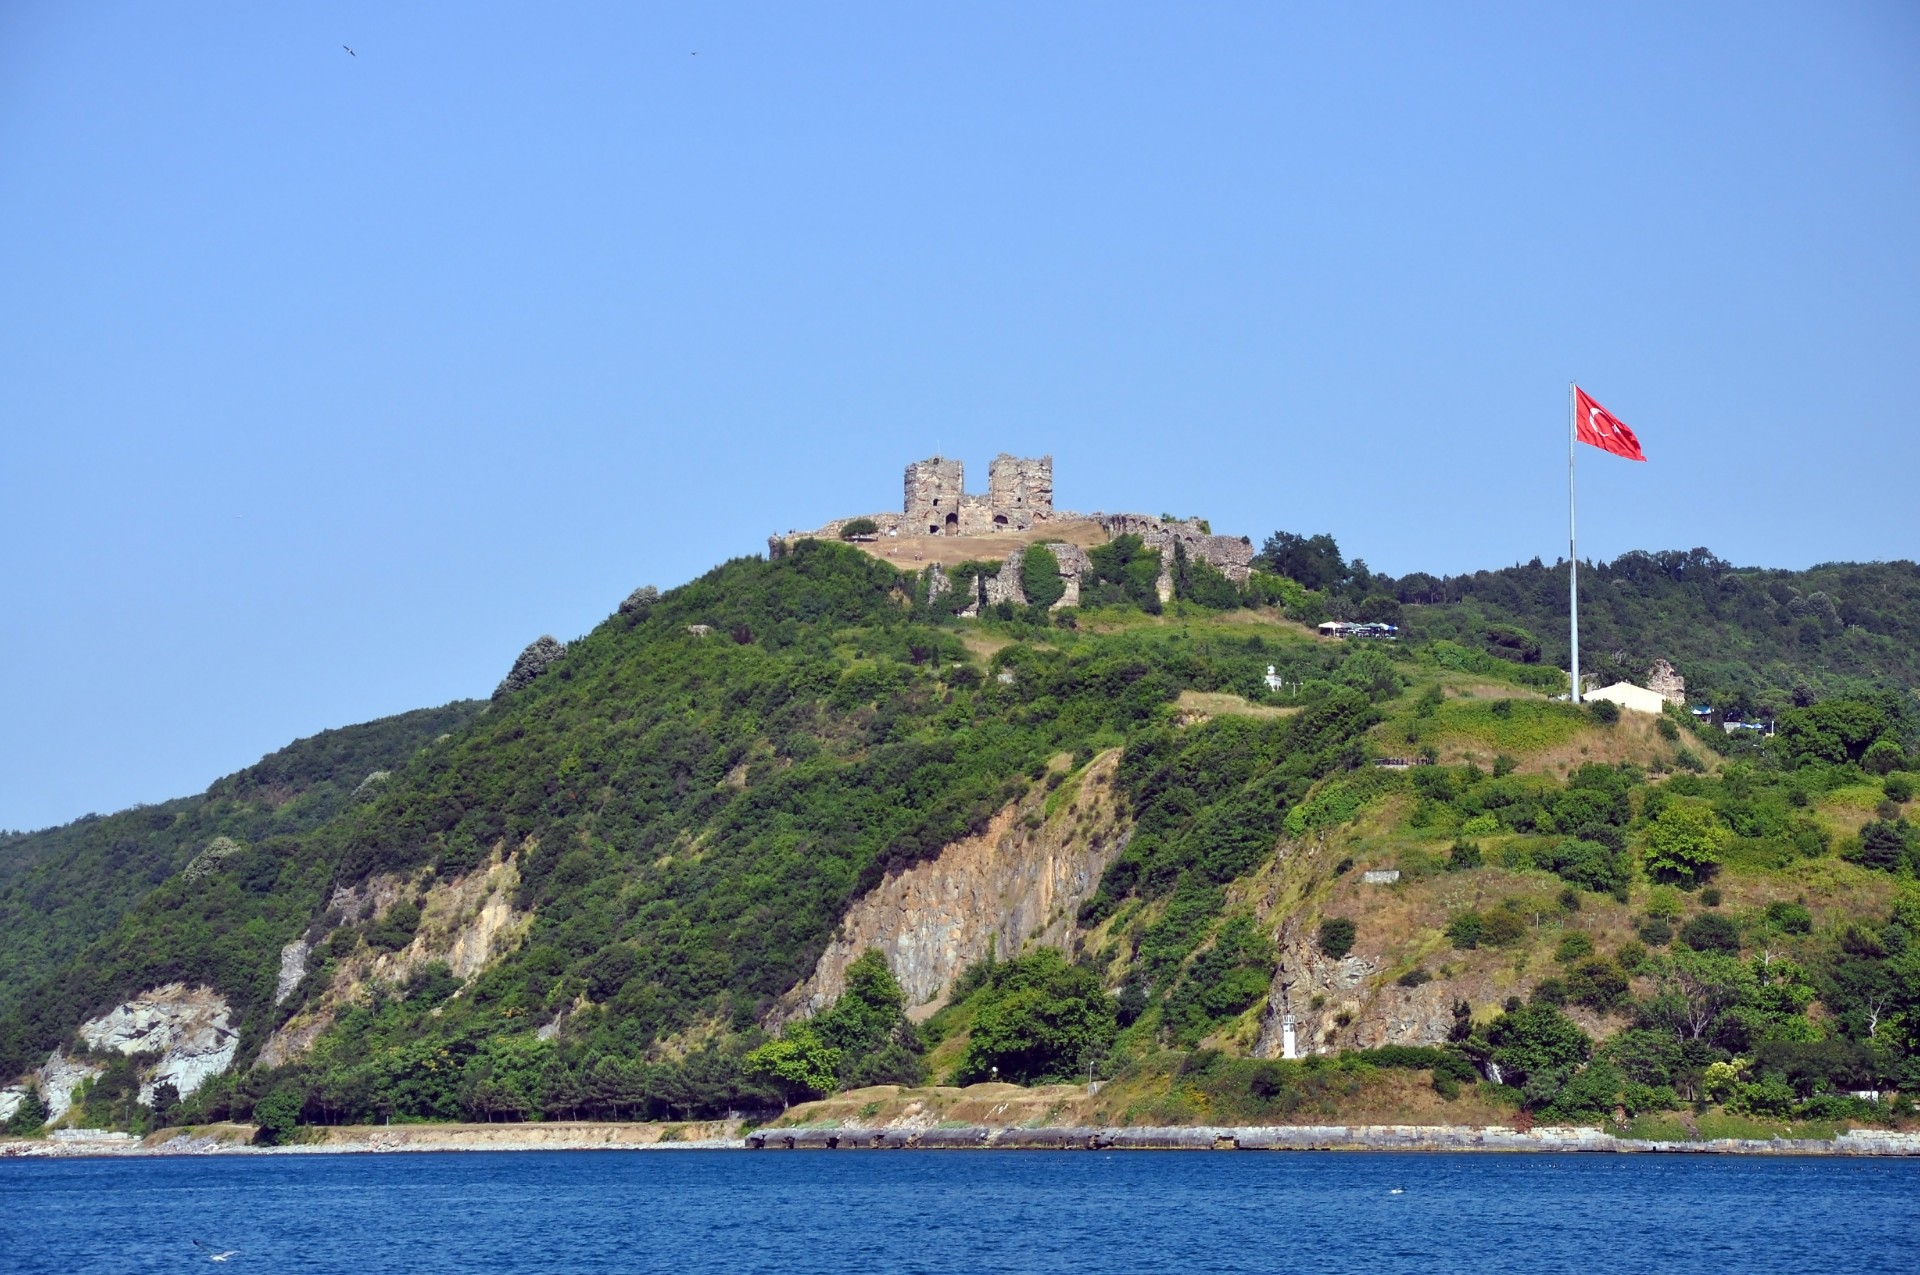 Yoros Castle from the Bosphorus Istanbul